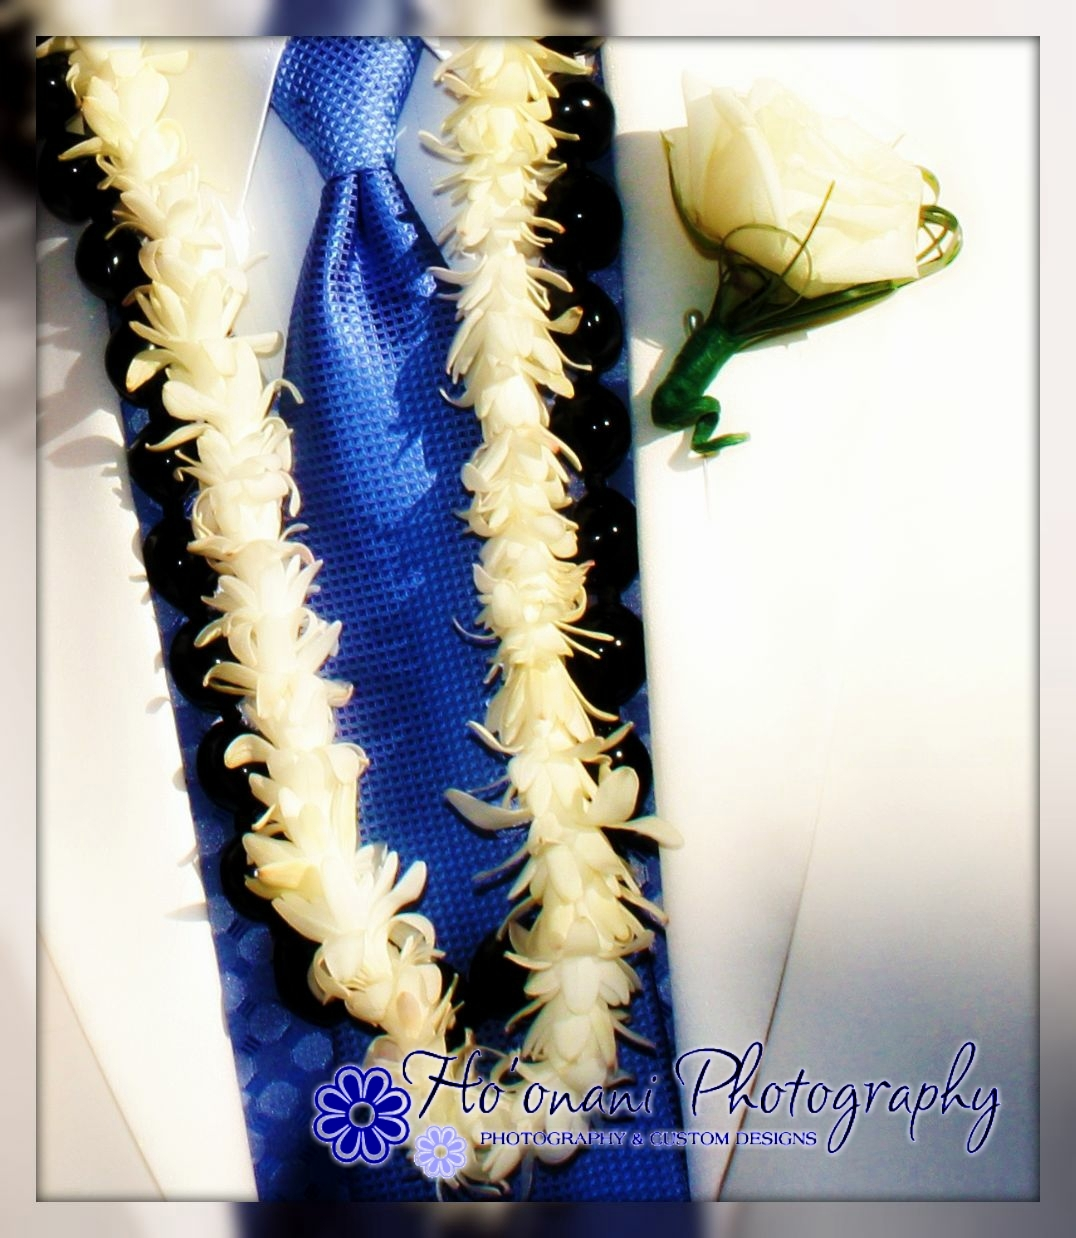 Ceremony, Inspiration, Reception, Flowers & Decor, Wedding Dresses, Fashion, white, yellow, blue, dress, Men's Formal Wear, Ceremony Flowers, Flowers, Groom, Wedding, Board, Tuxedo, Hoonani photography, Flower Wedding Dresses